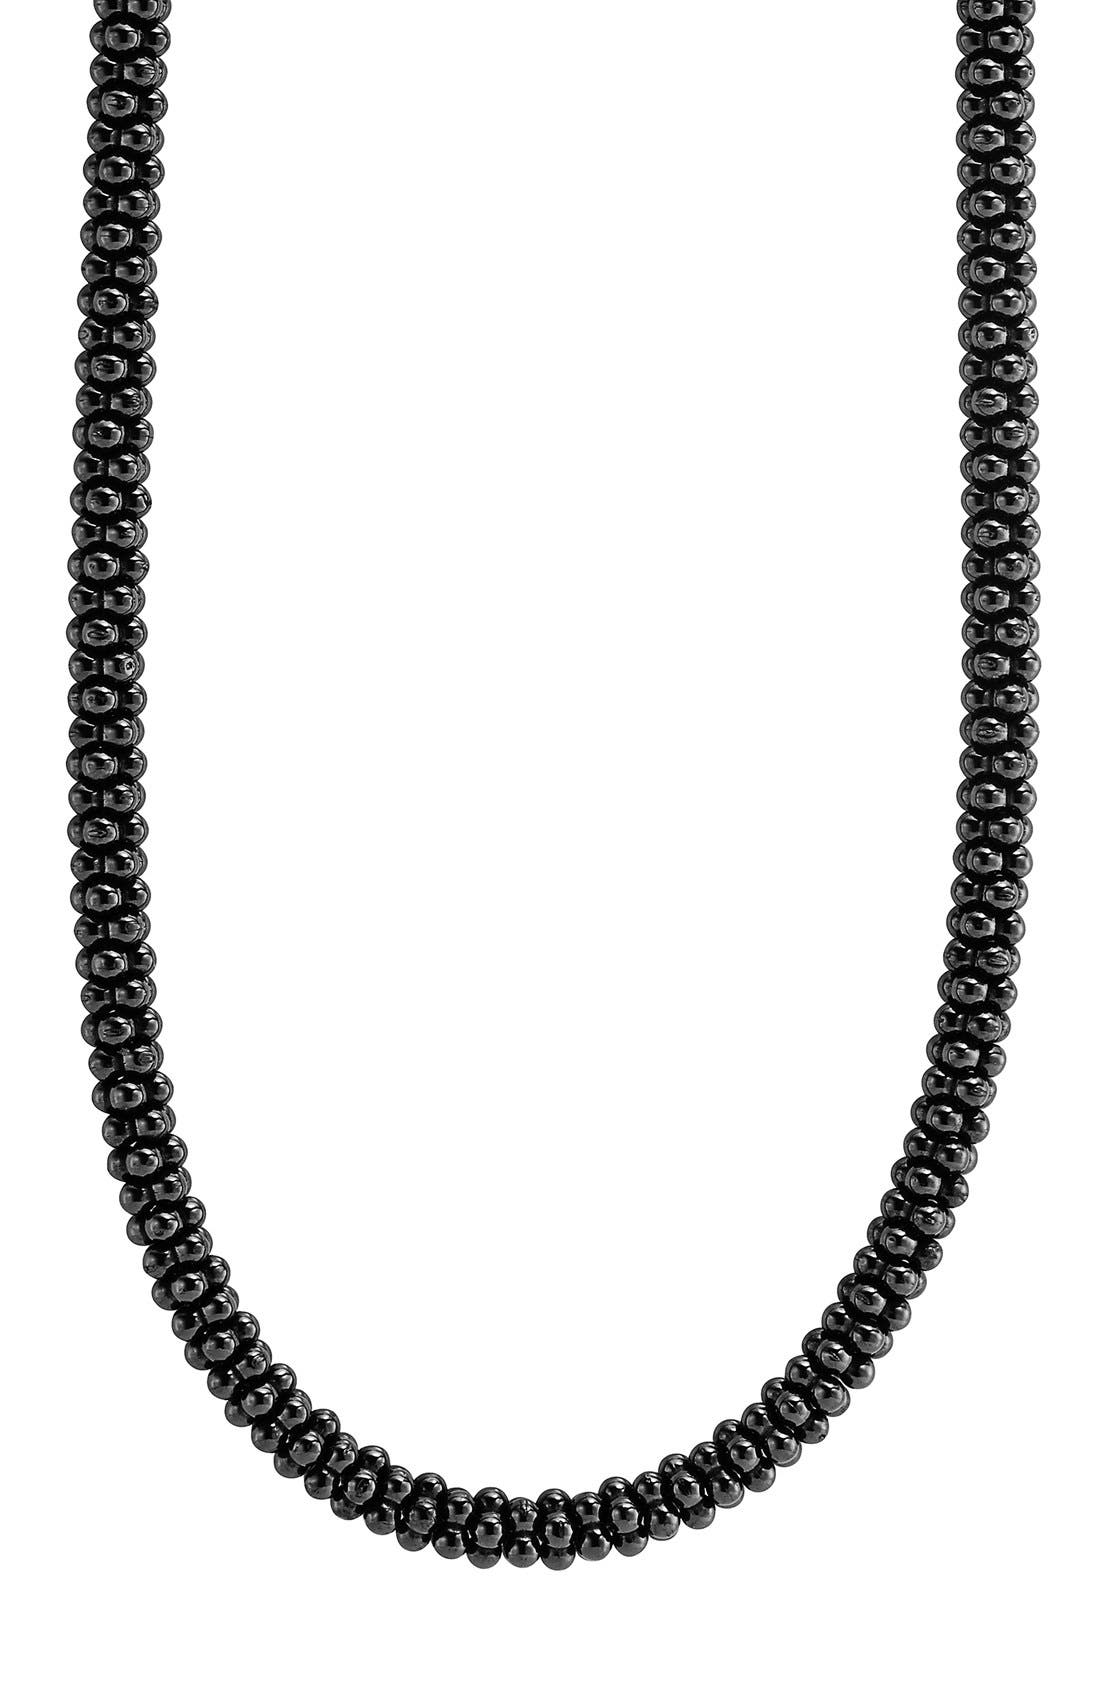 'Black Caviar' 5mm Beaded Necklace,                             Alternate thumbnail 2, color,                             Black Caviar